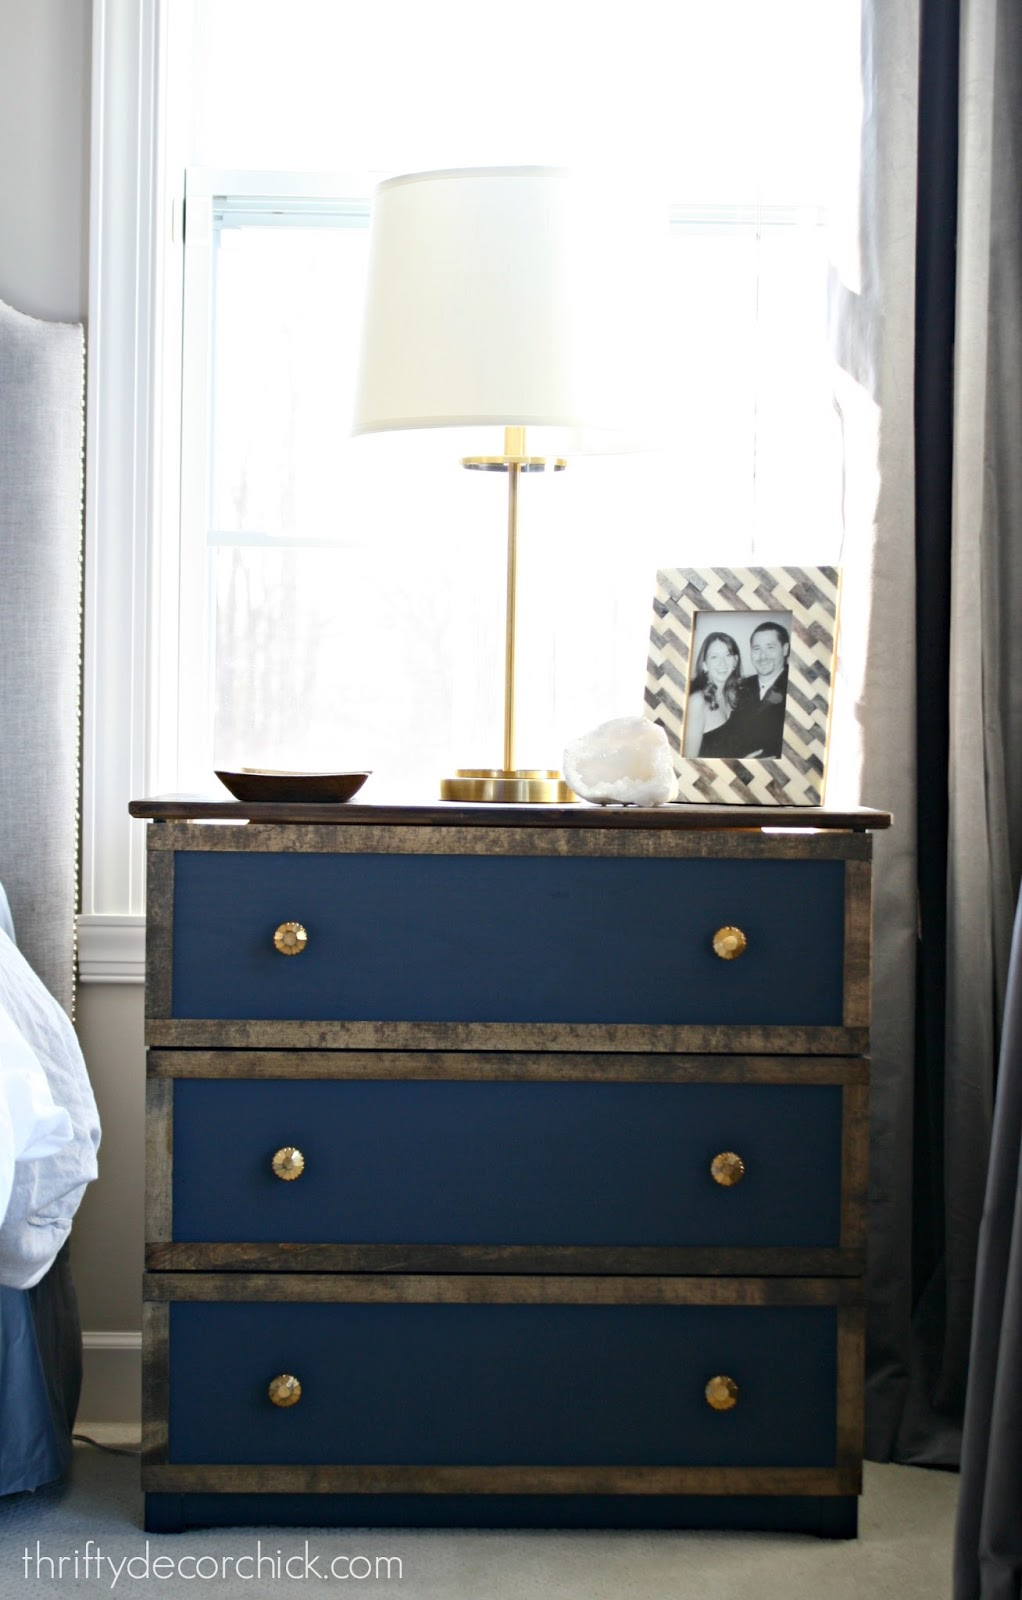 Tarva hack with paint and wood trim